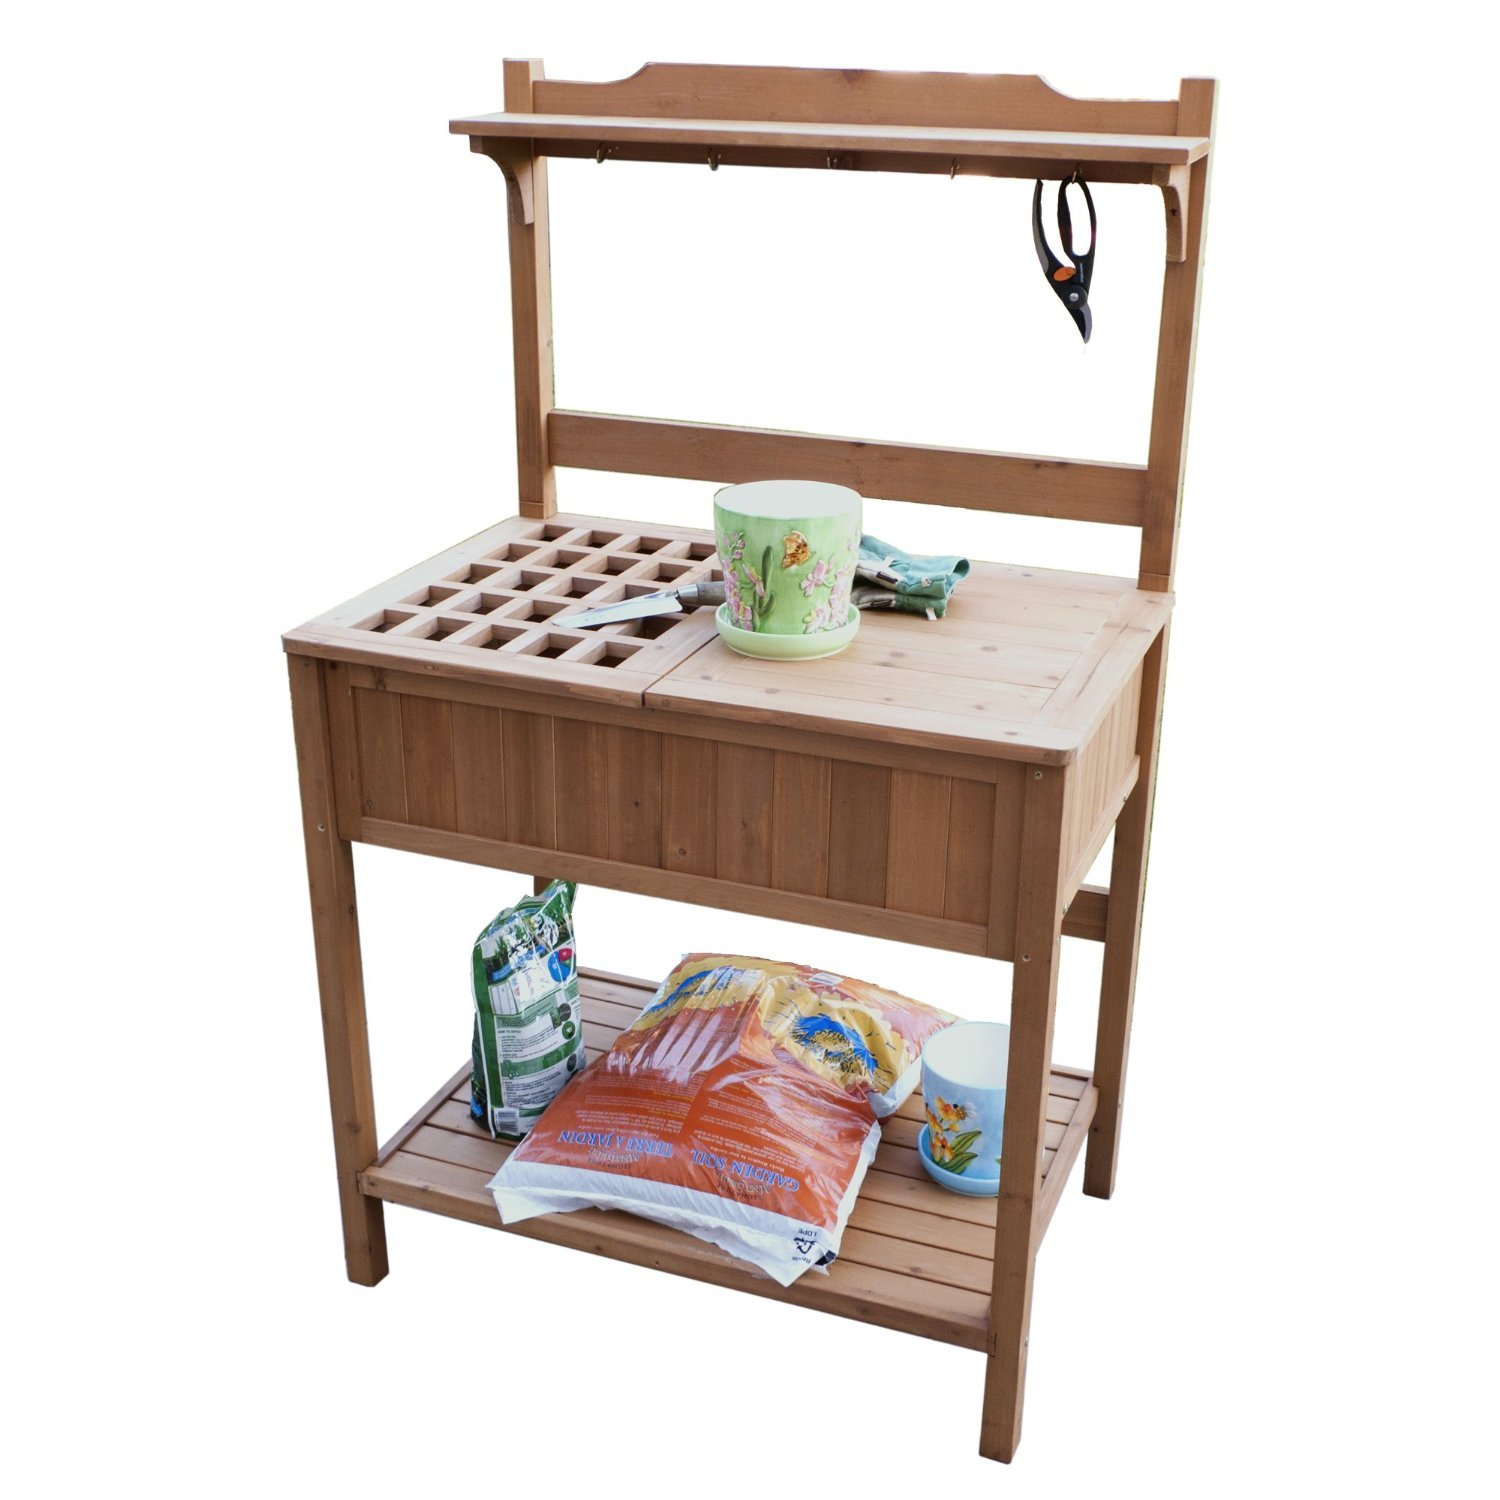 Premium Potting Bench Furniture Storage for Patio Deck or Garden in Wooden Outdoor and Contemporary Design